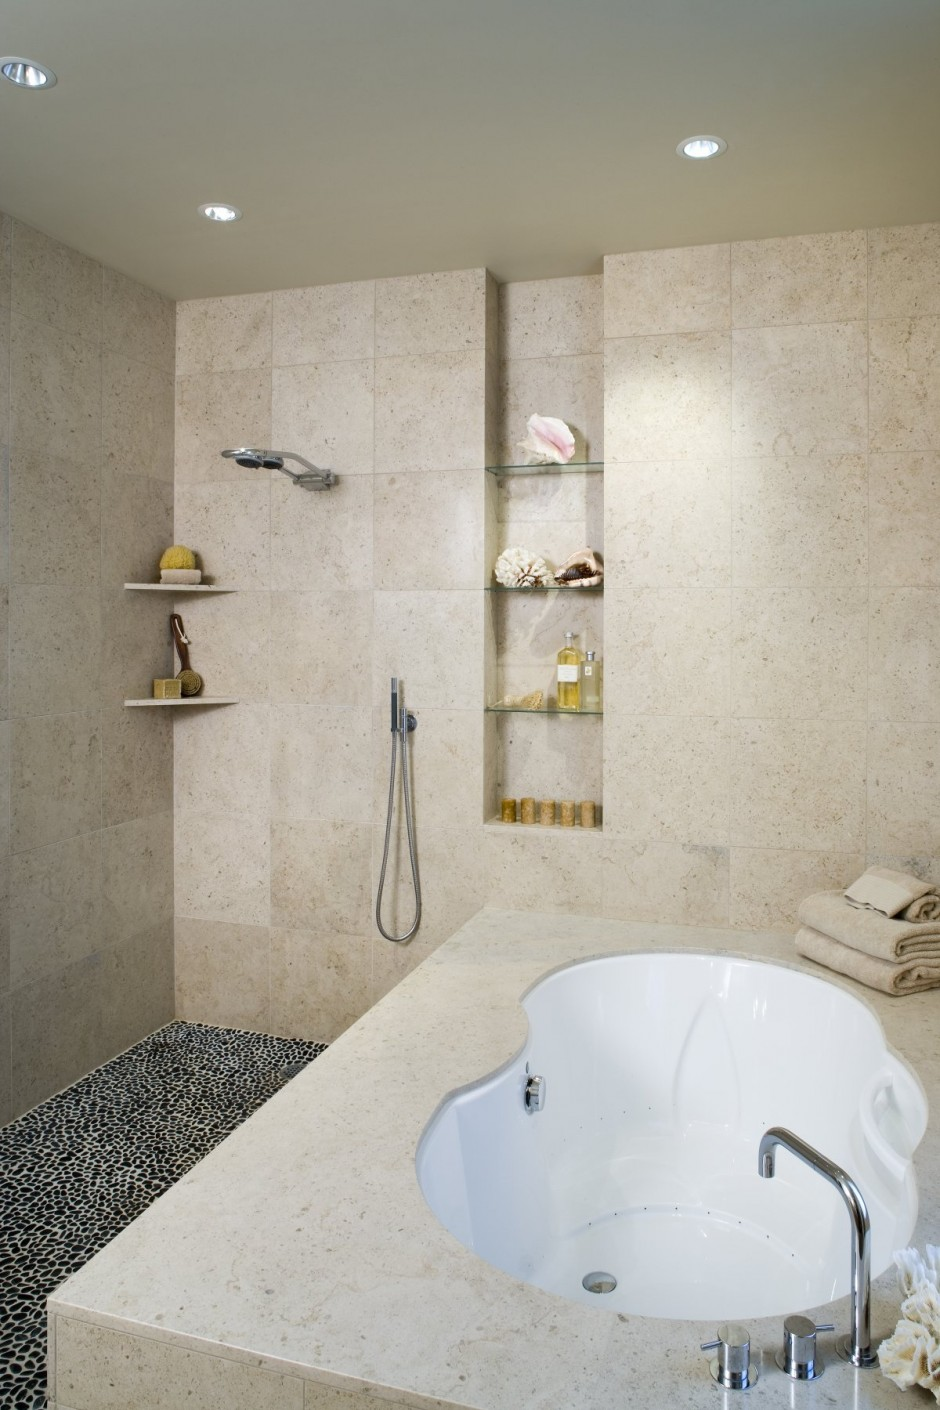 The Shower Niche - A Universal Symbol For Stylish Bathrooms